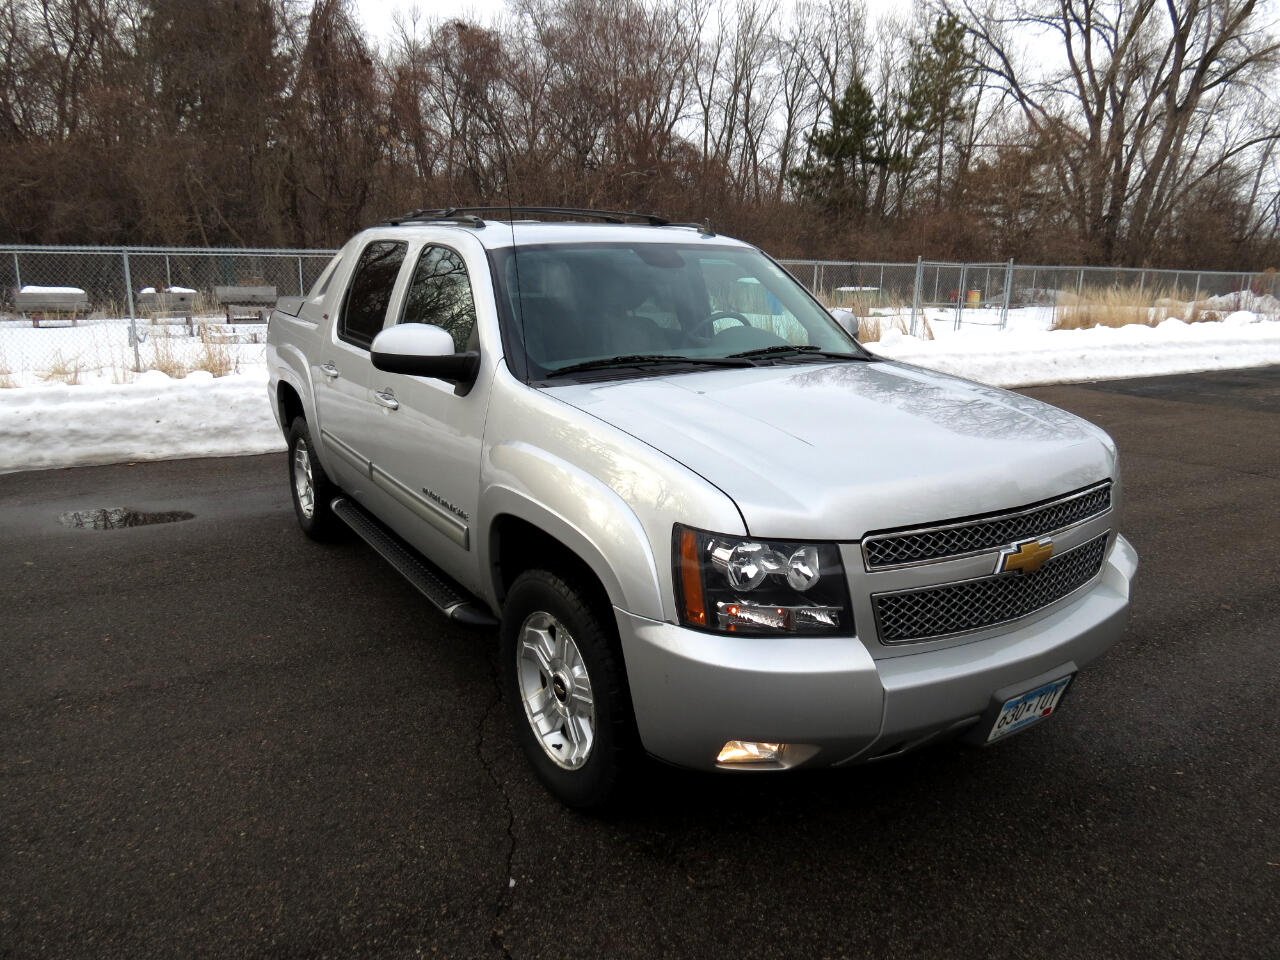 used 2012 Chevrolet Avalanche car, priced at $16,998